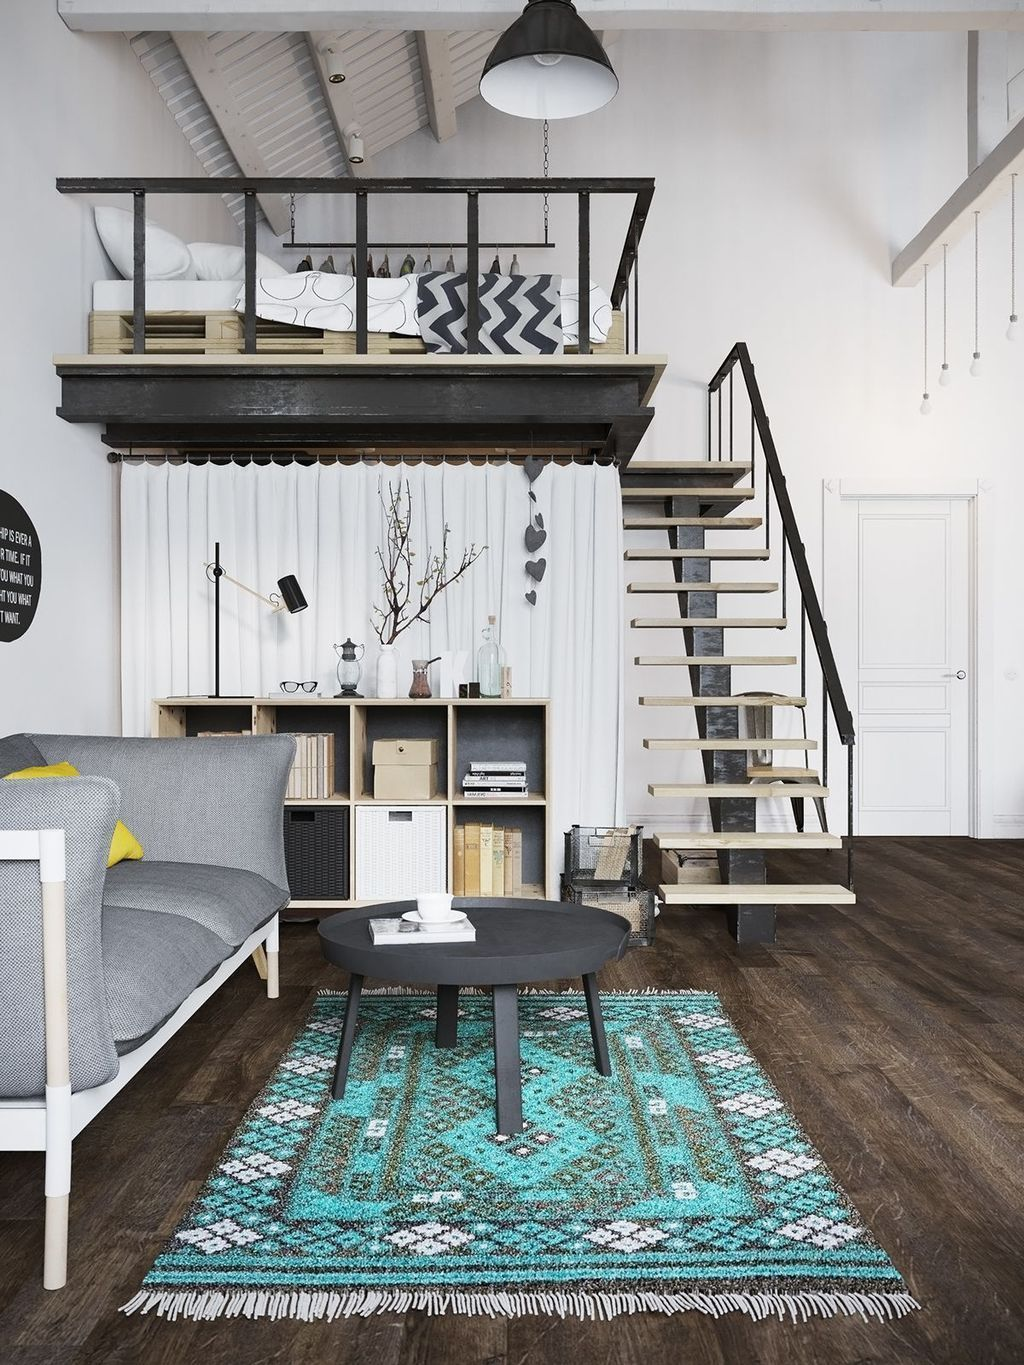 1 bedroom loft apartment  Pin by tinna 京 on Home decor  Pinterest  Loft Home Decor and House